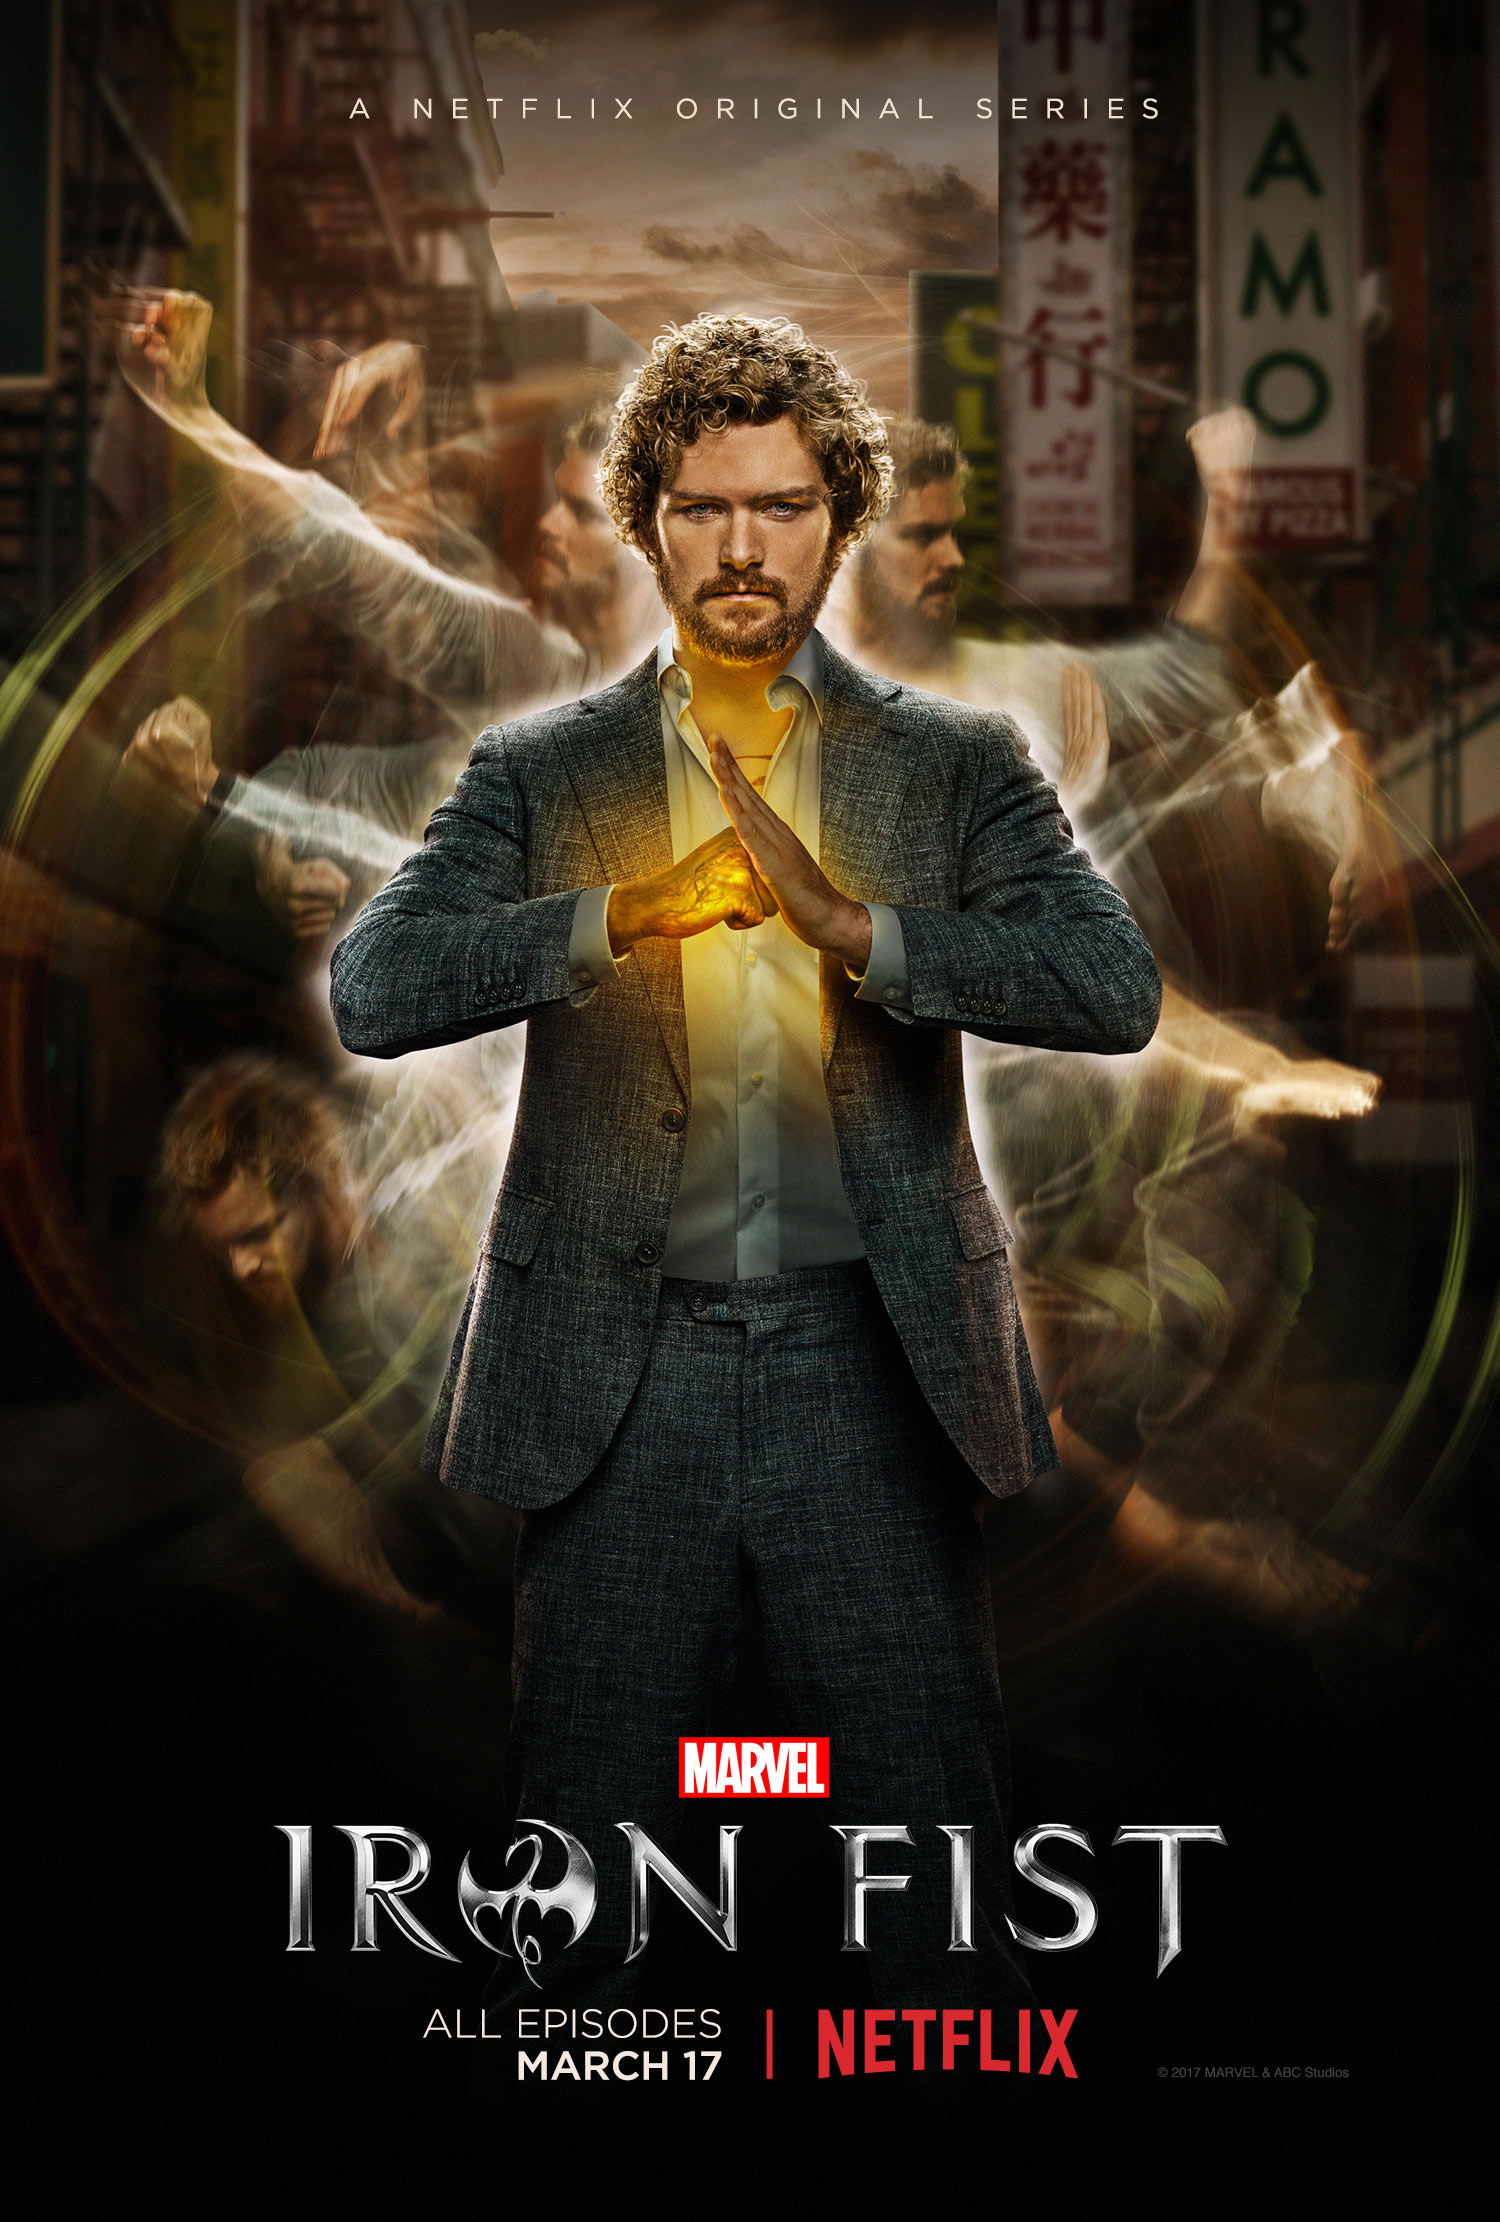 New Poster Revealed for Netflix's Iron Fist